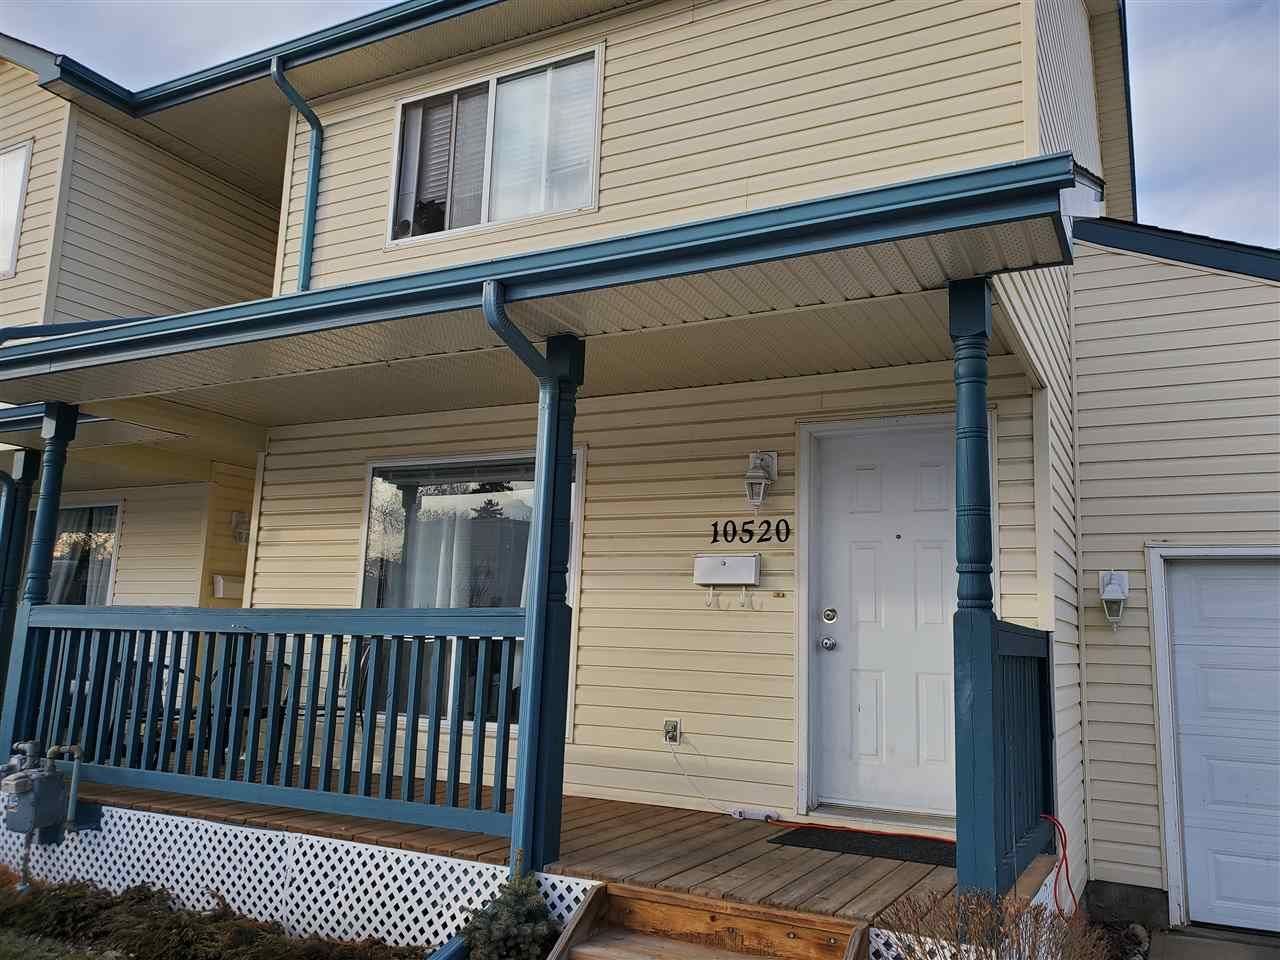 Main Photo: 10520 108 Avenue in Edmonton: Zone 08 Townhouse for sale : MLS®# E4234039